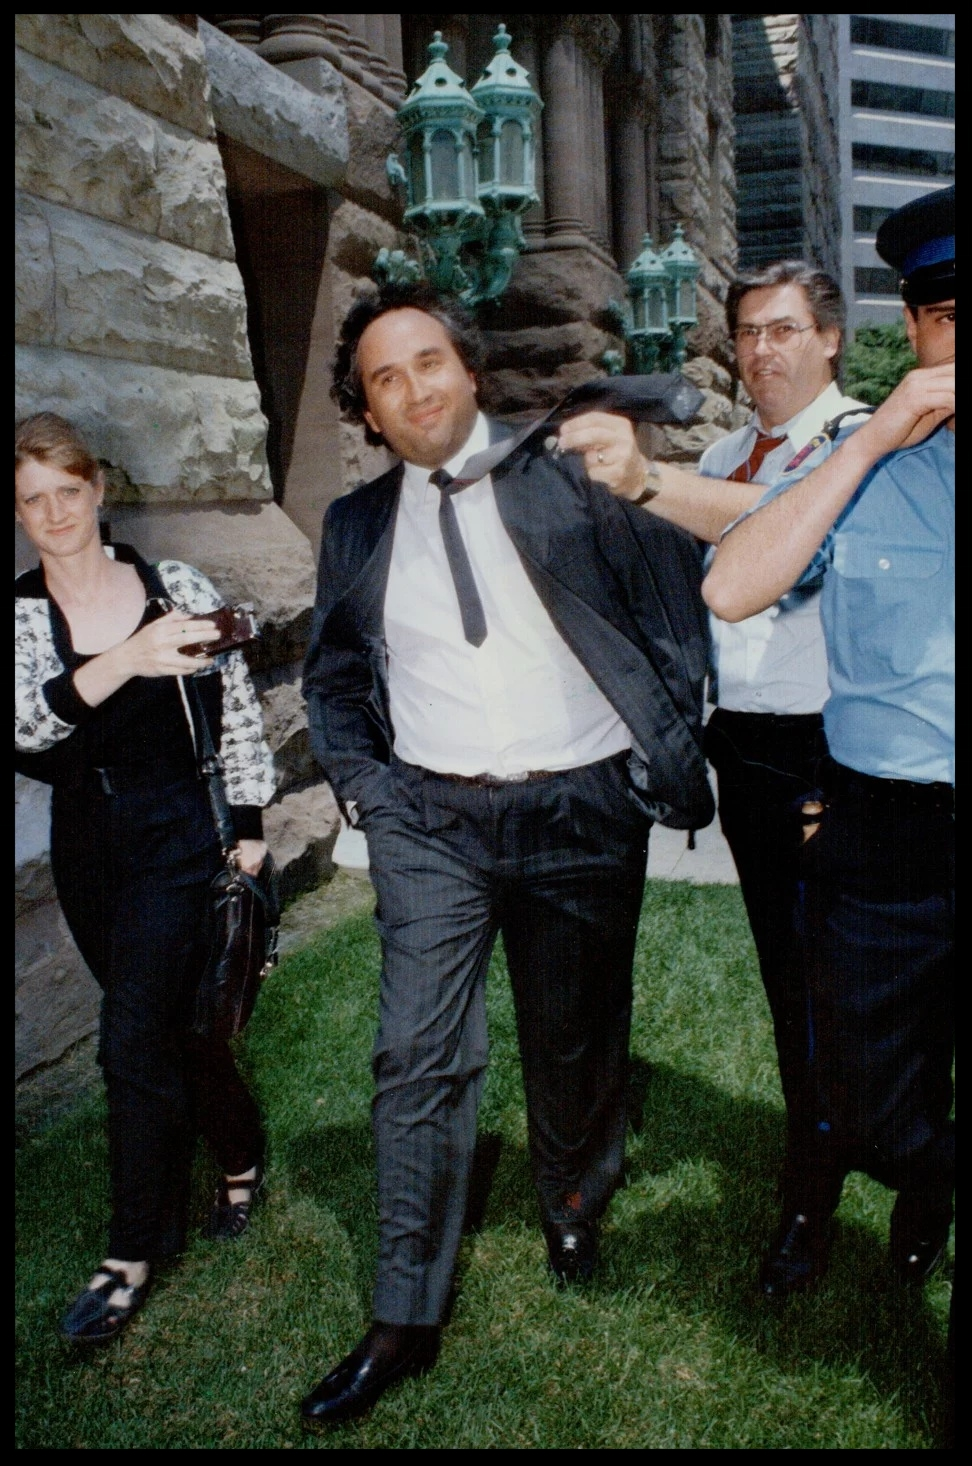 Immigration lawyer Martin Pilzmaker is freed on C$75,000 bail in Toronto on July 6, 1989. Pilzmaker, charged with more than 50 immigration-related offences, committed suicide on April 19, 1991, two weeks before his trial was due to begin. Photo: Getty Images